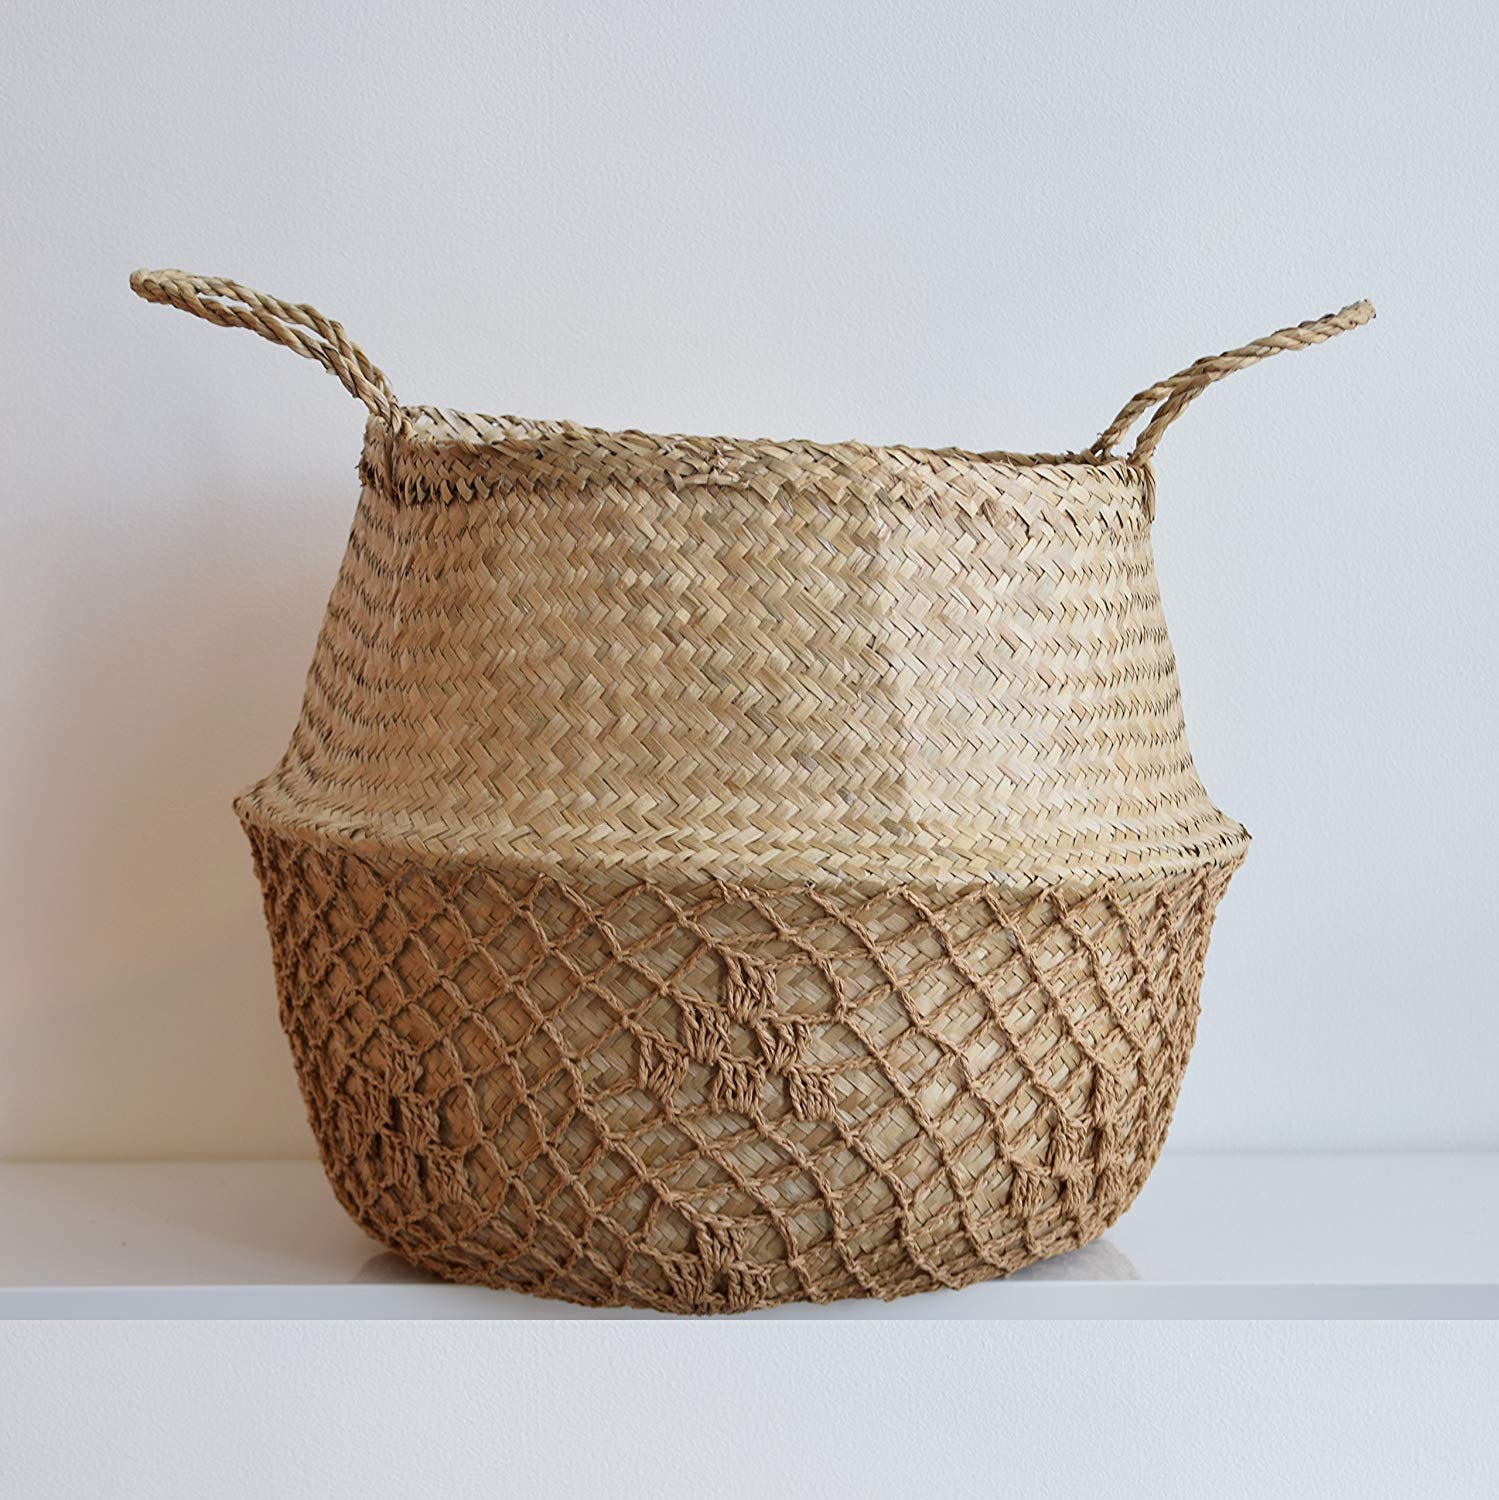 woven tote basket - great for the home!